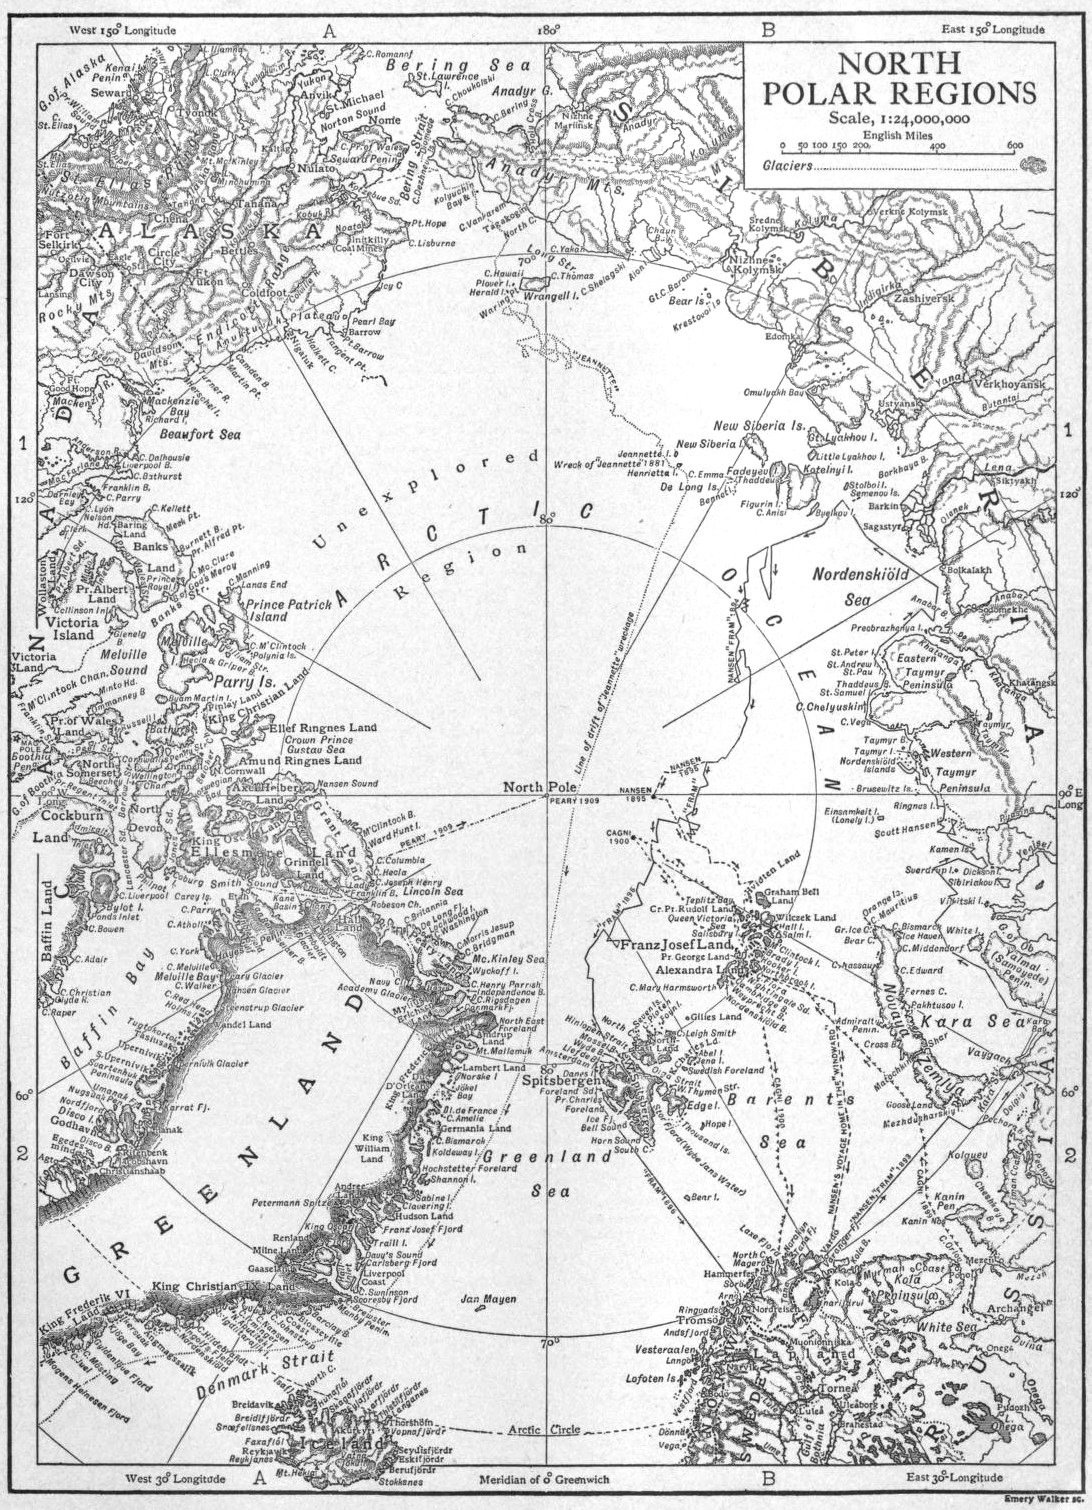 EB1911 Polar Regions -North Polar Regions.jpg